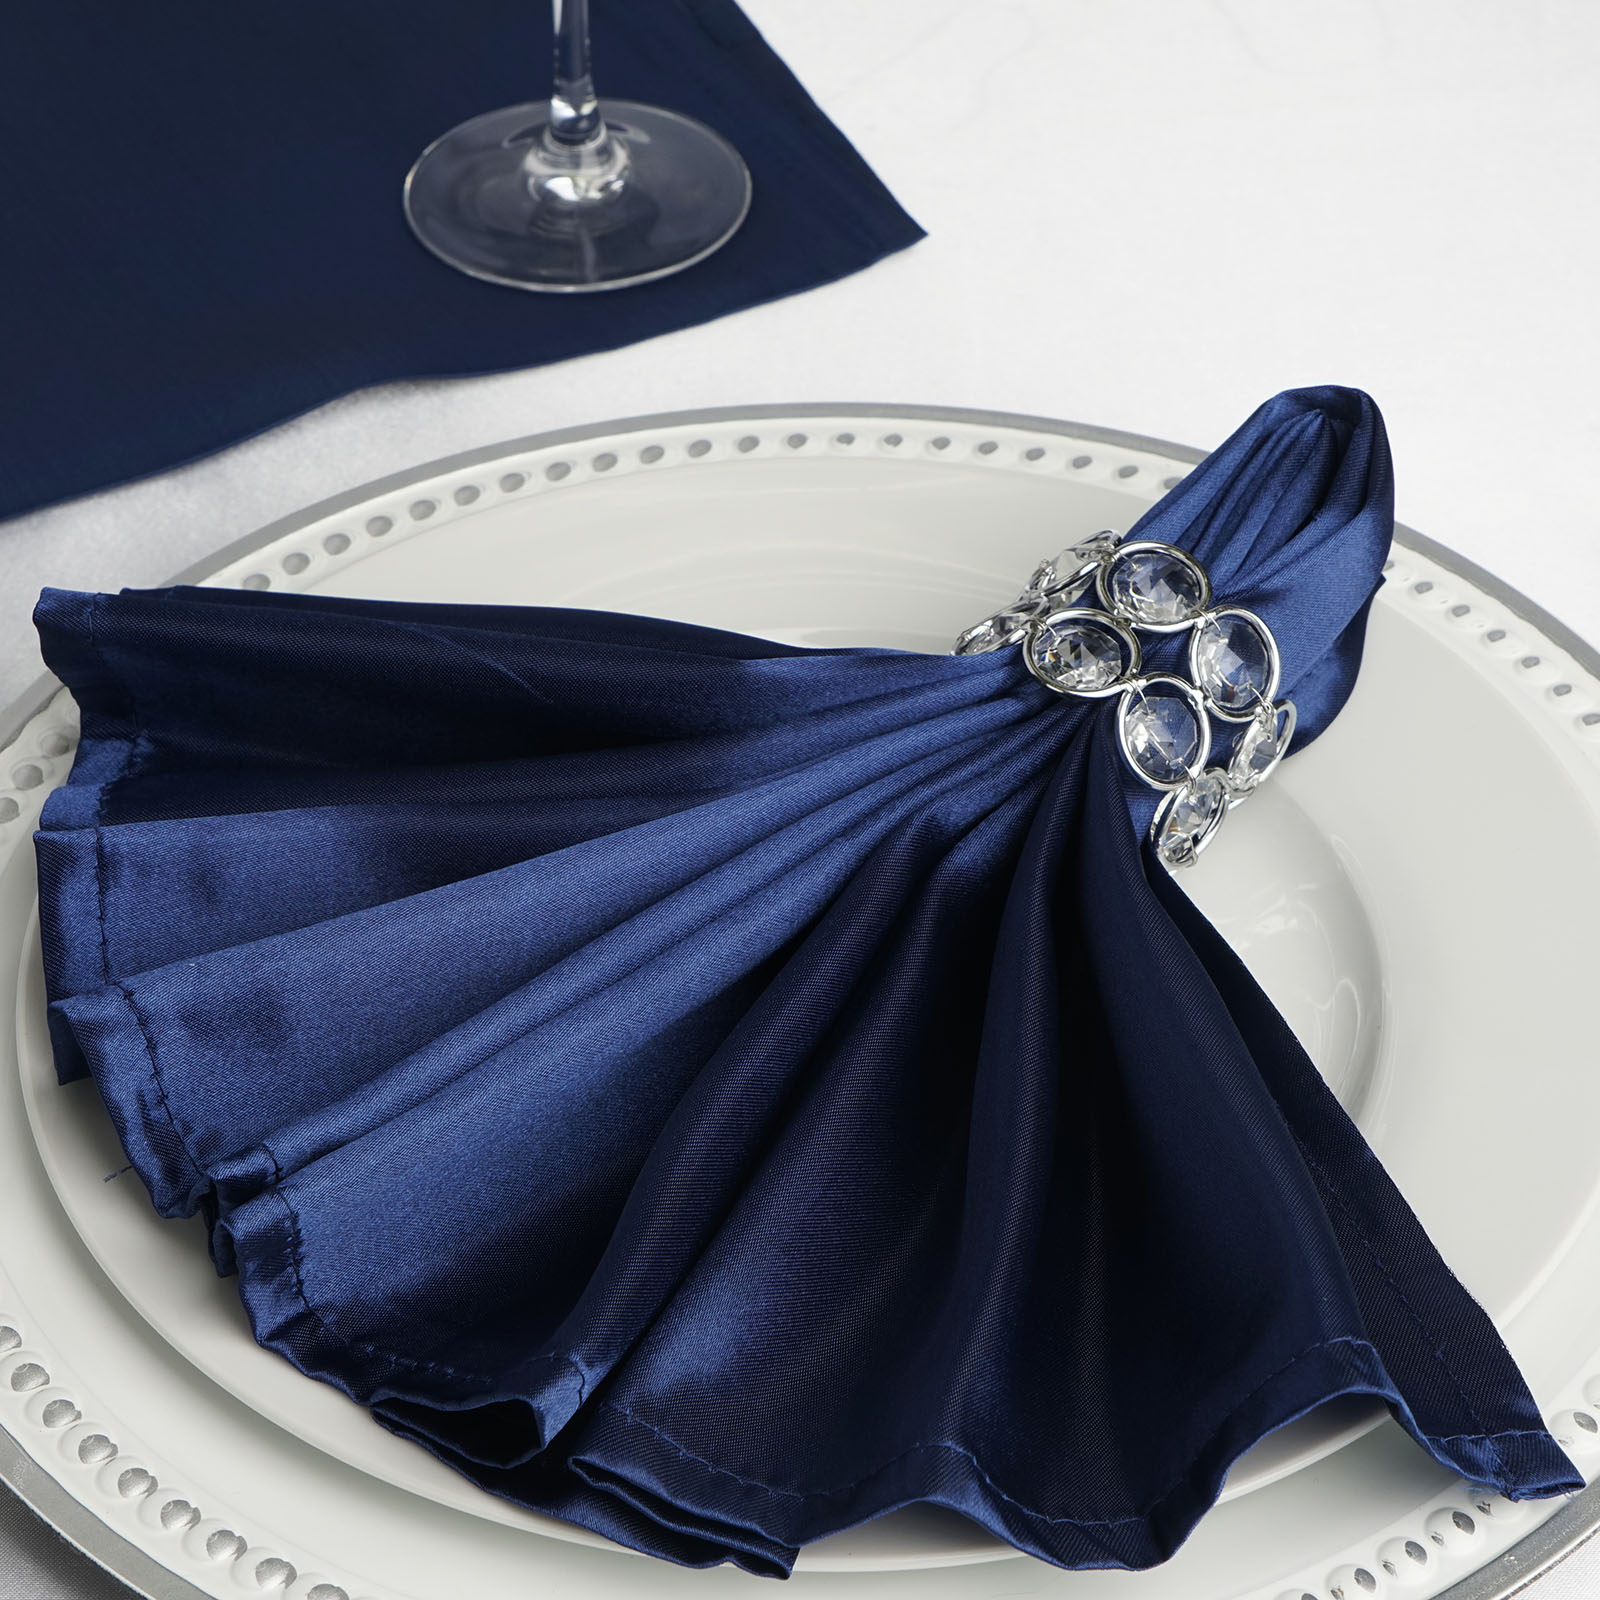 10 Navy Blue Silky Satin 20x20 Wedding Napkins Party Table Linens Catering Ebay